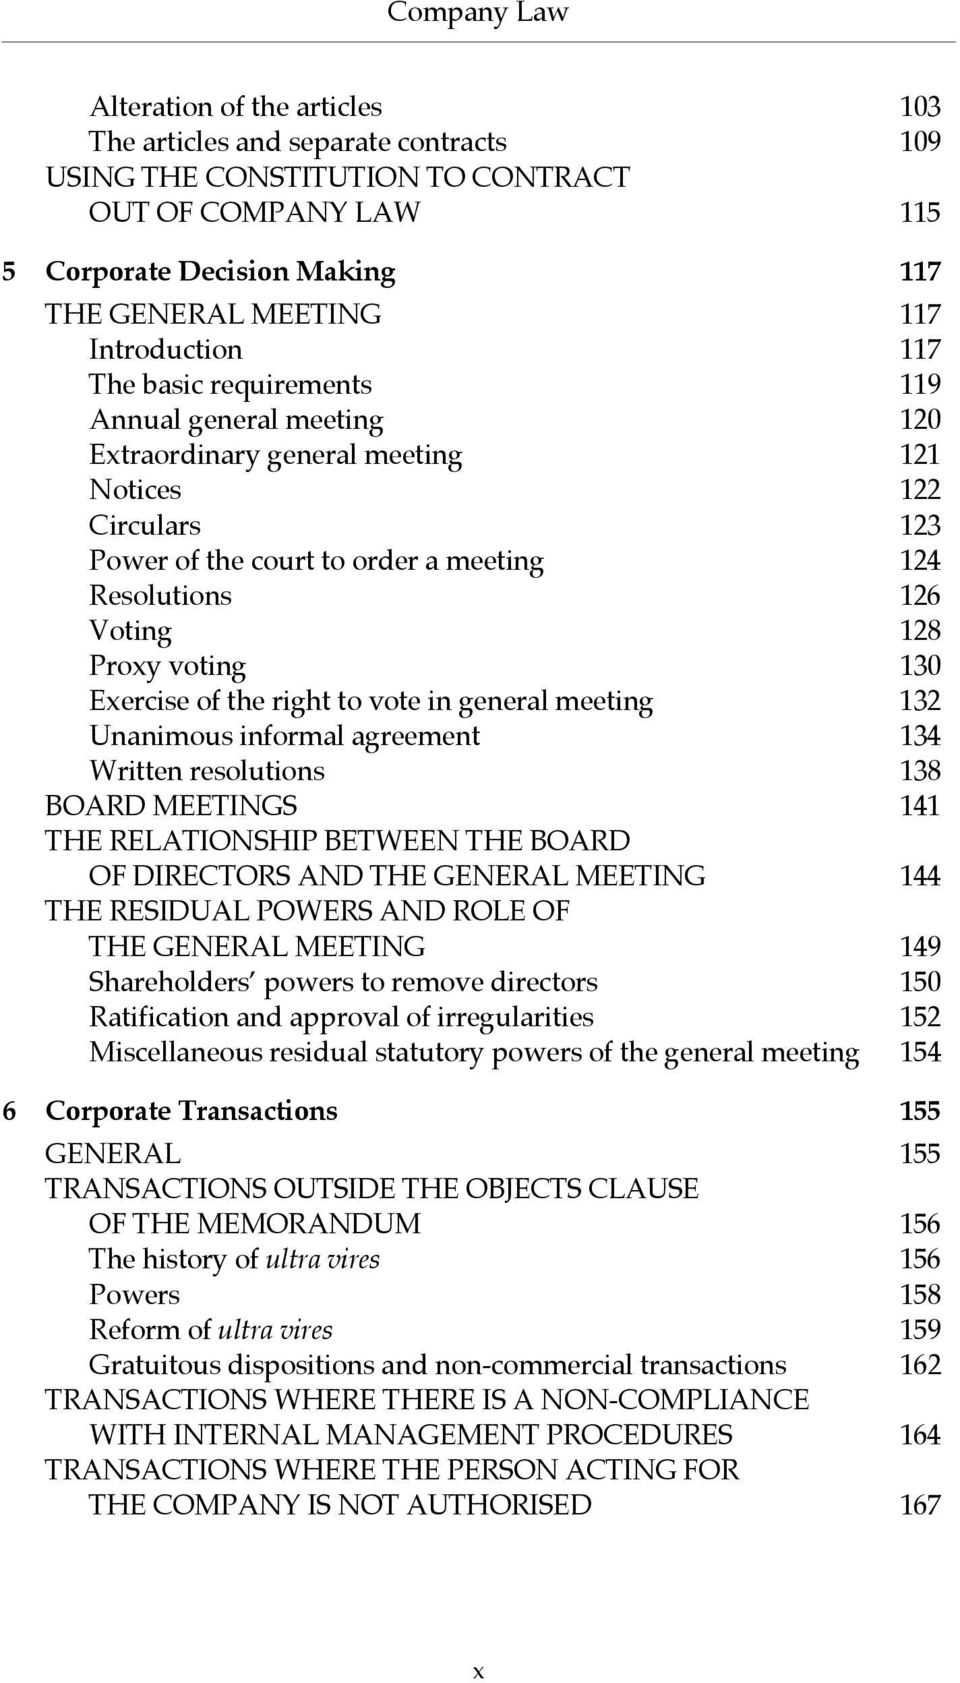 Proxy voting 130 Exercise of the right to vote in general meeting 132 Unanimous informal agreement 134 Written resolutions 138 BOARD MEETINGS 141 THE RELATIONSHIP BETWEEN THE BOARD OF DIRECTORS AND